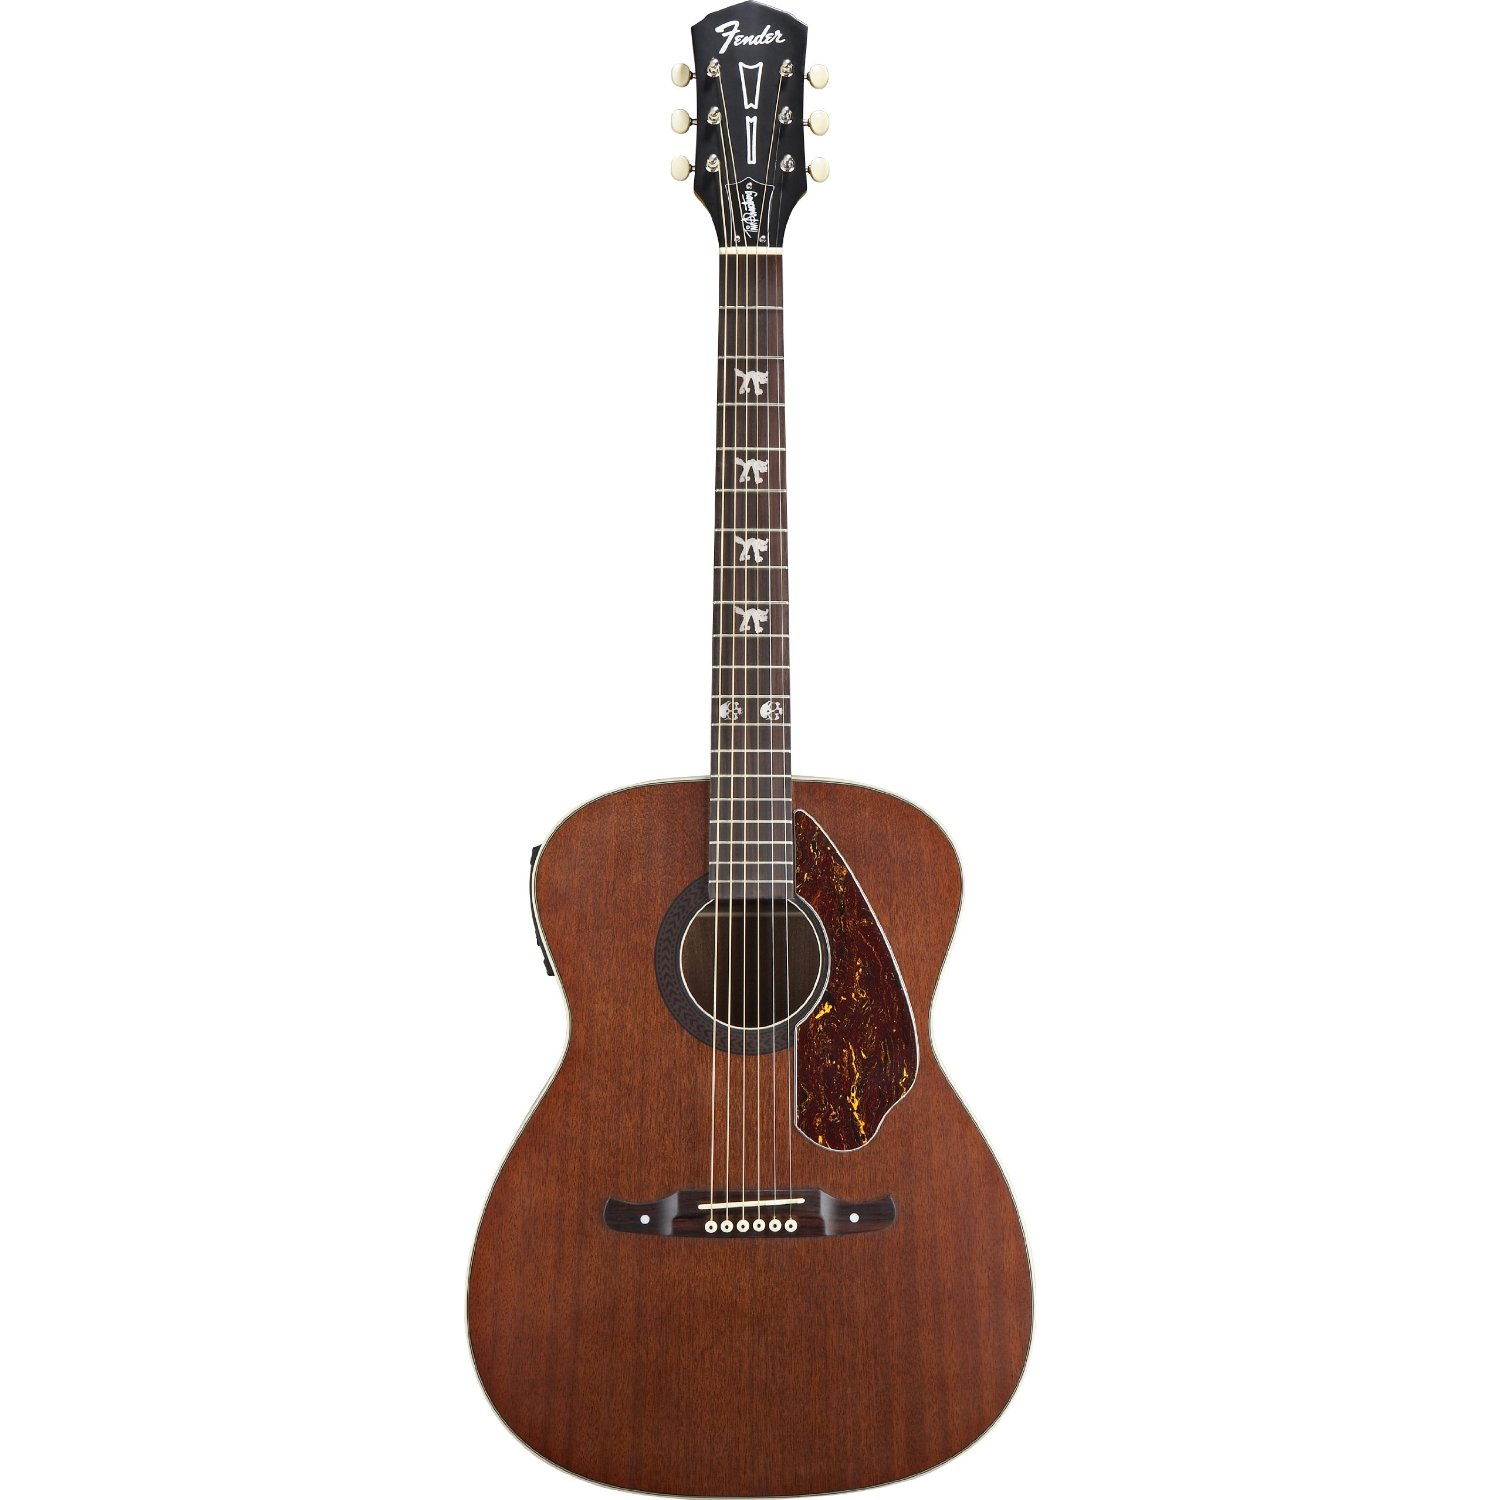 Tim Armstrong Fender Hellcat Acoustic Guitar Review